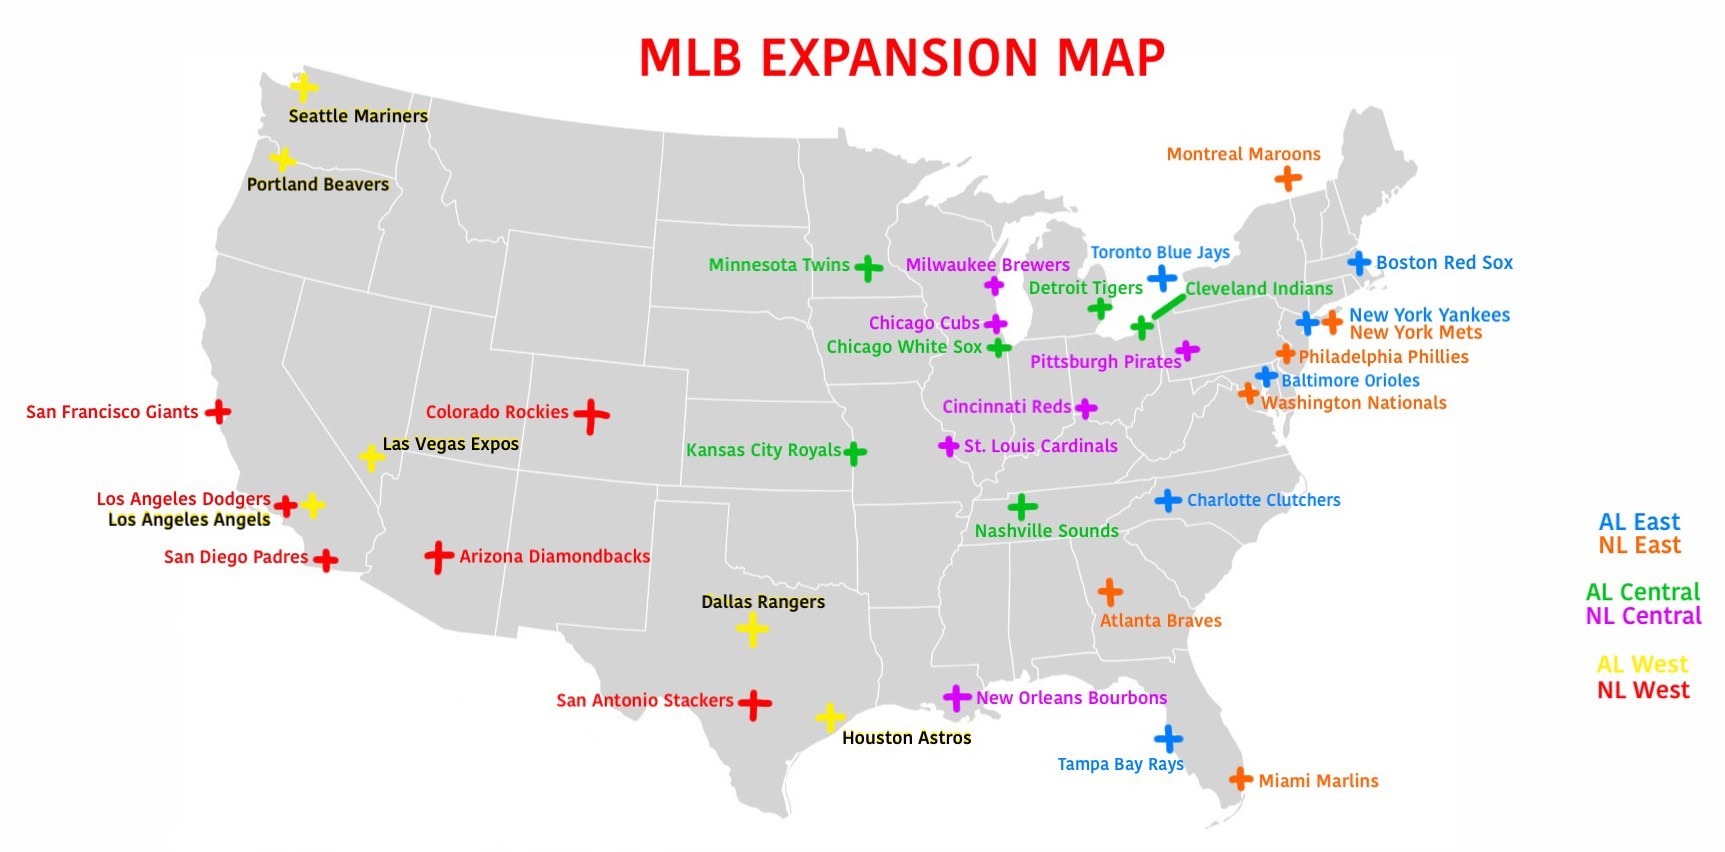 This MLB Expansion Map Just Makes Sense - Chris6d - Medium